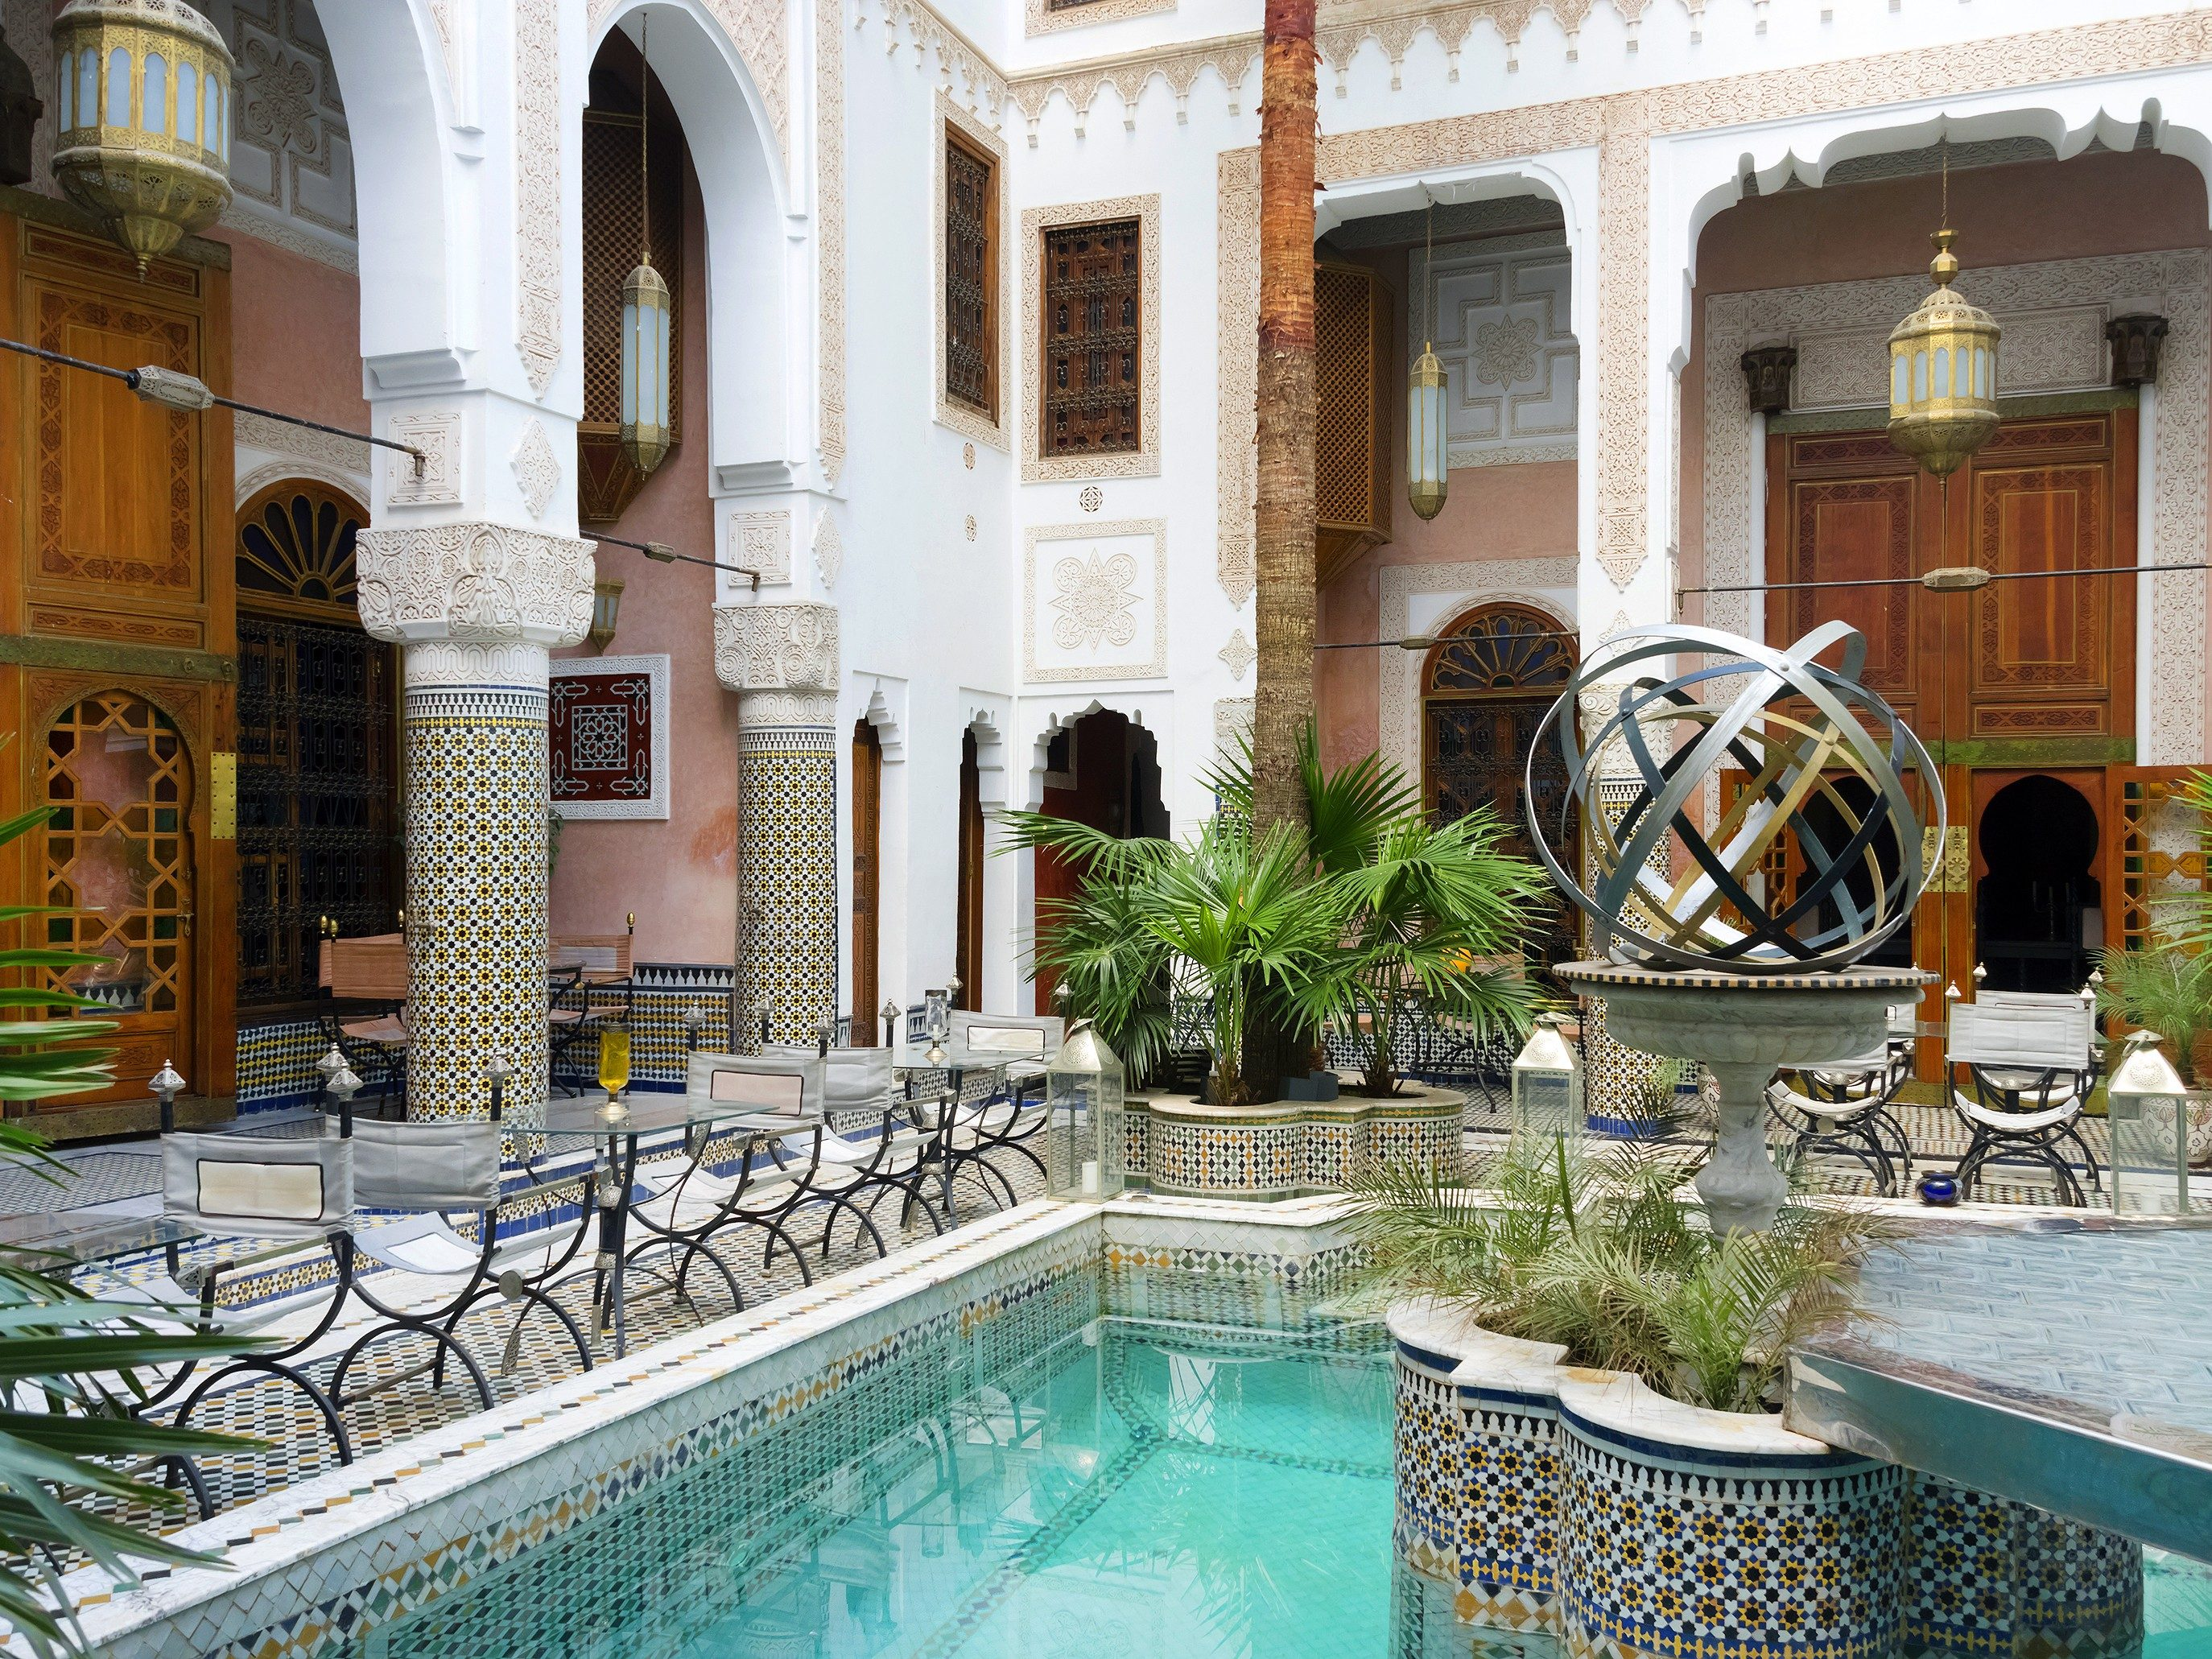 World's 10 Sexiest Places: Marrakesh, Morocco